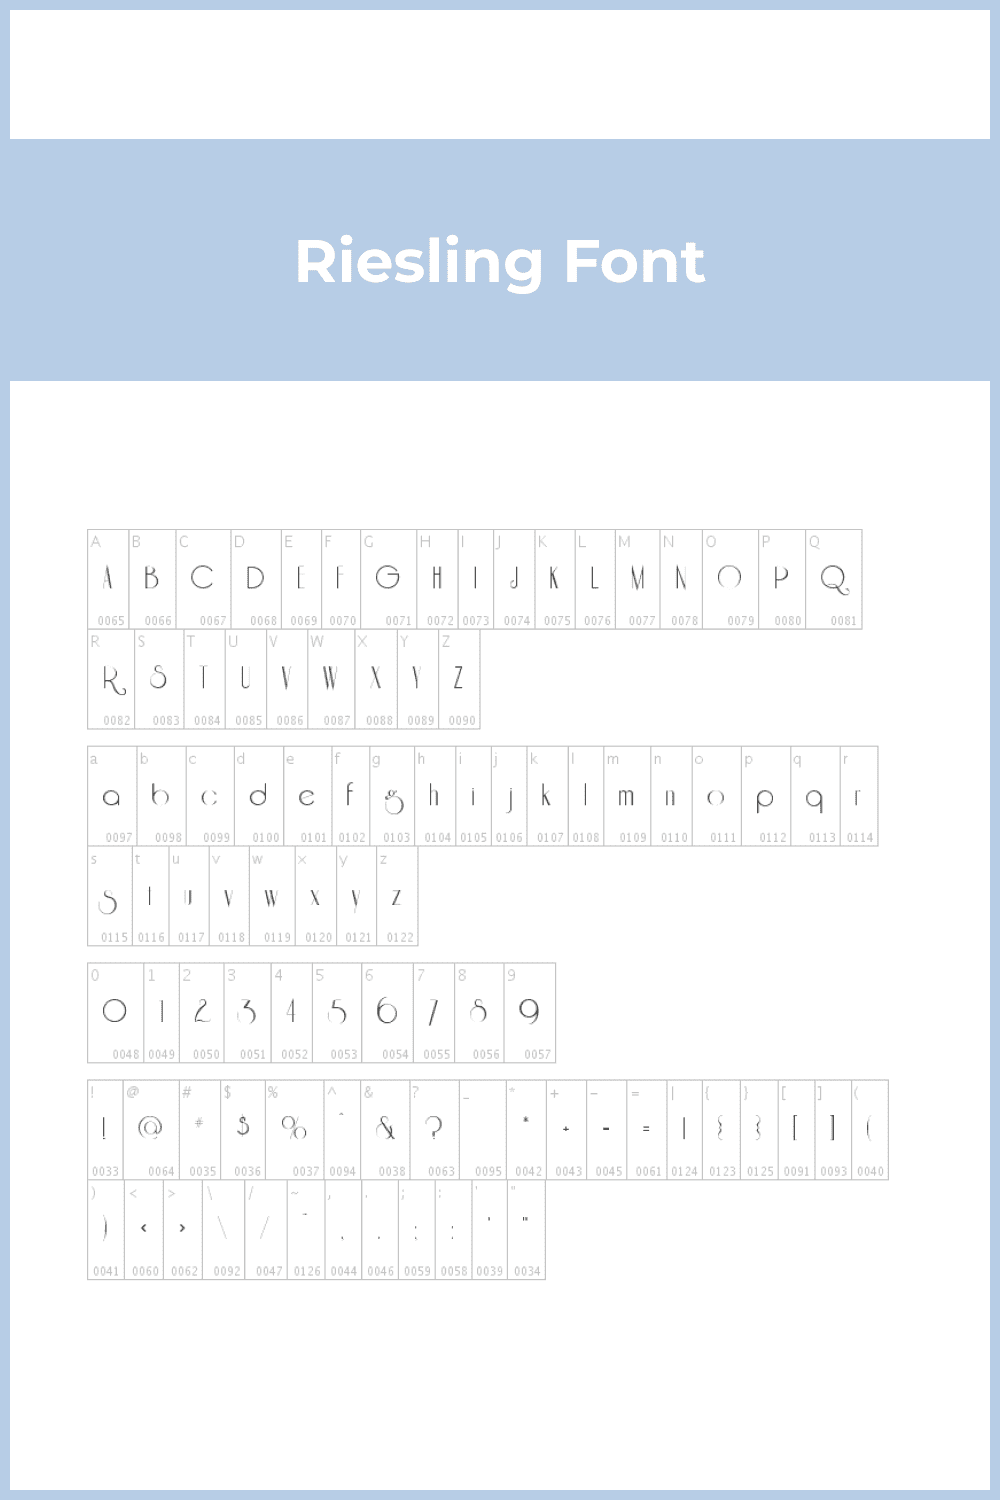 A simple font with inspirational letters.